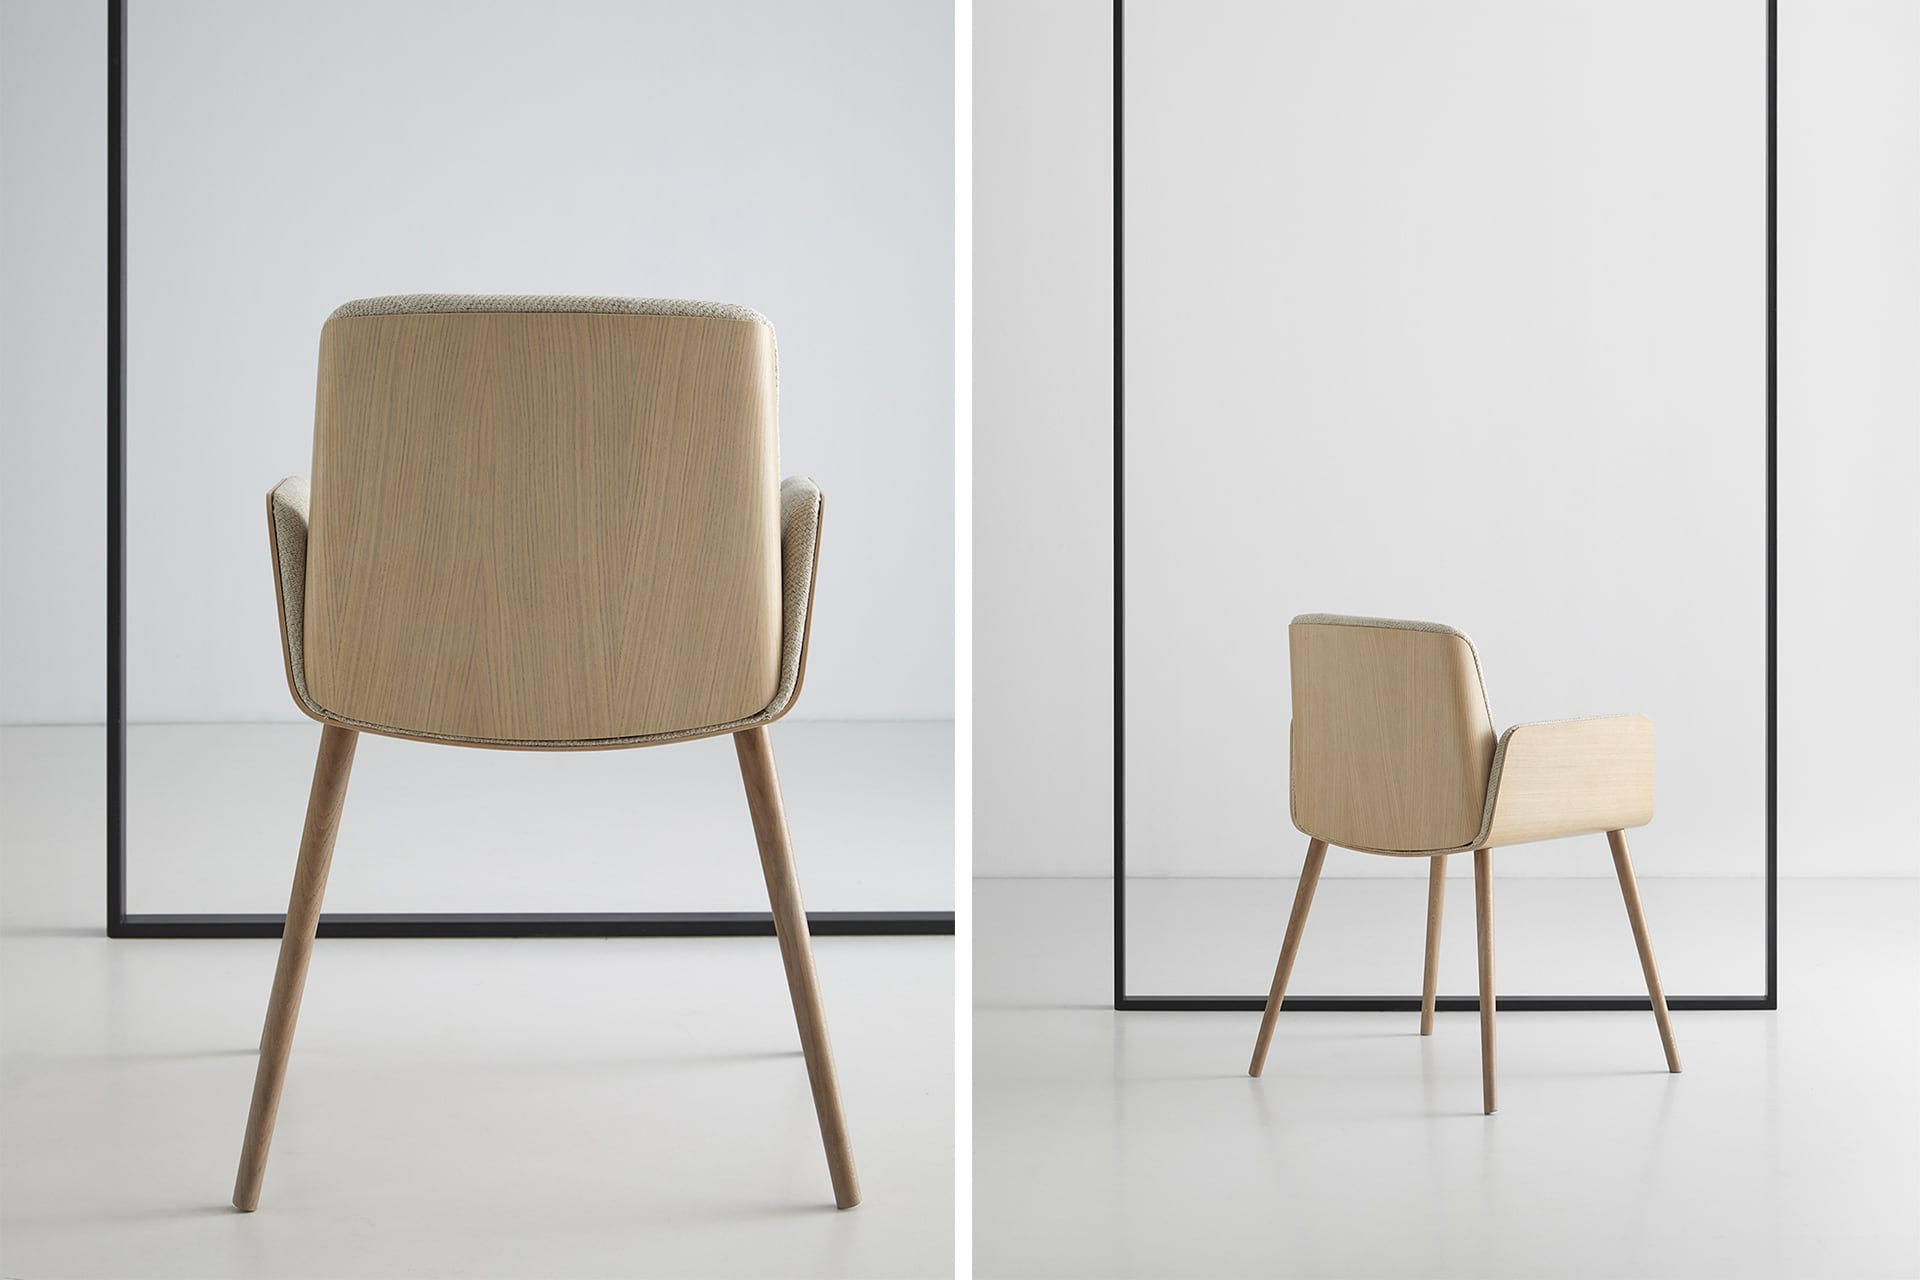 Hug Dining Chair  from Punt Mobles, designed by Manel Molina